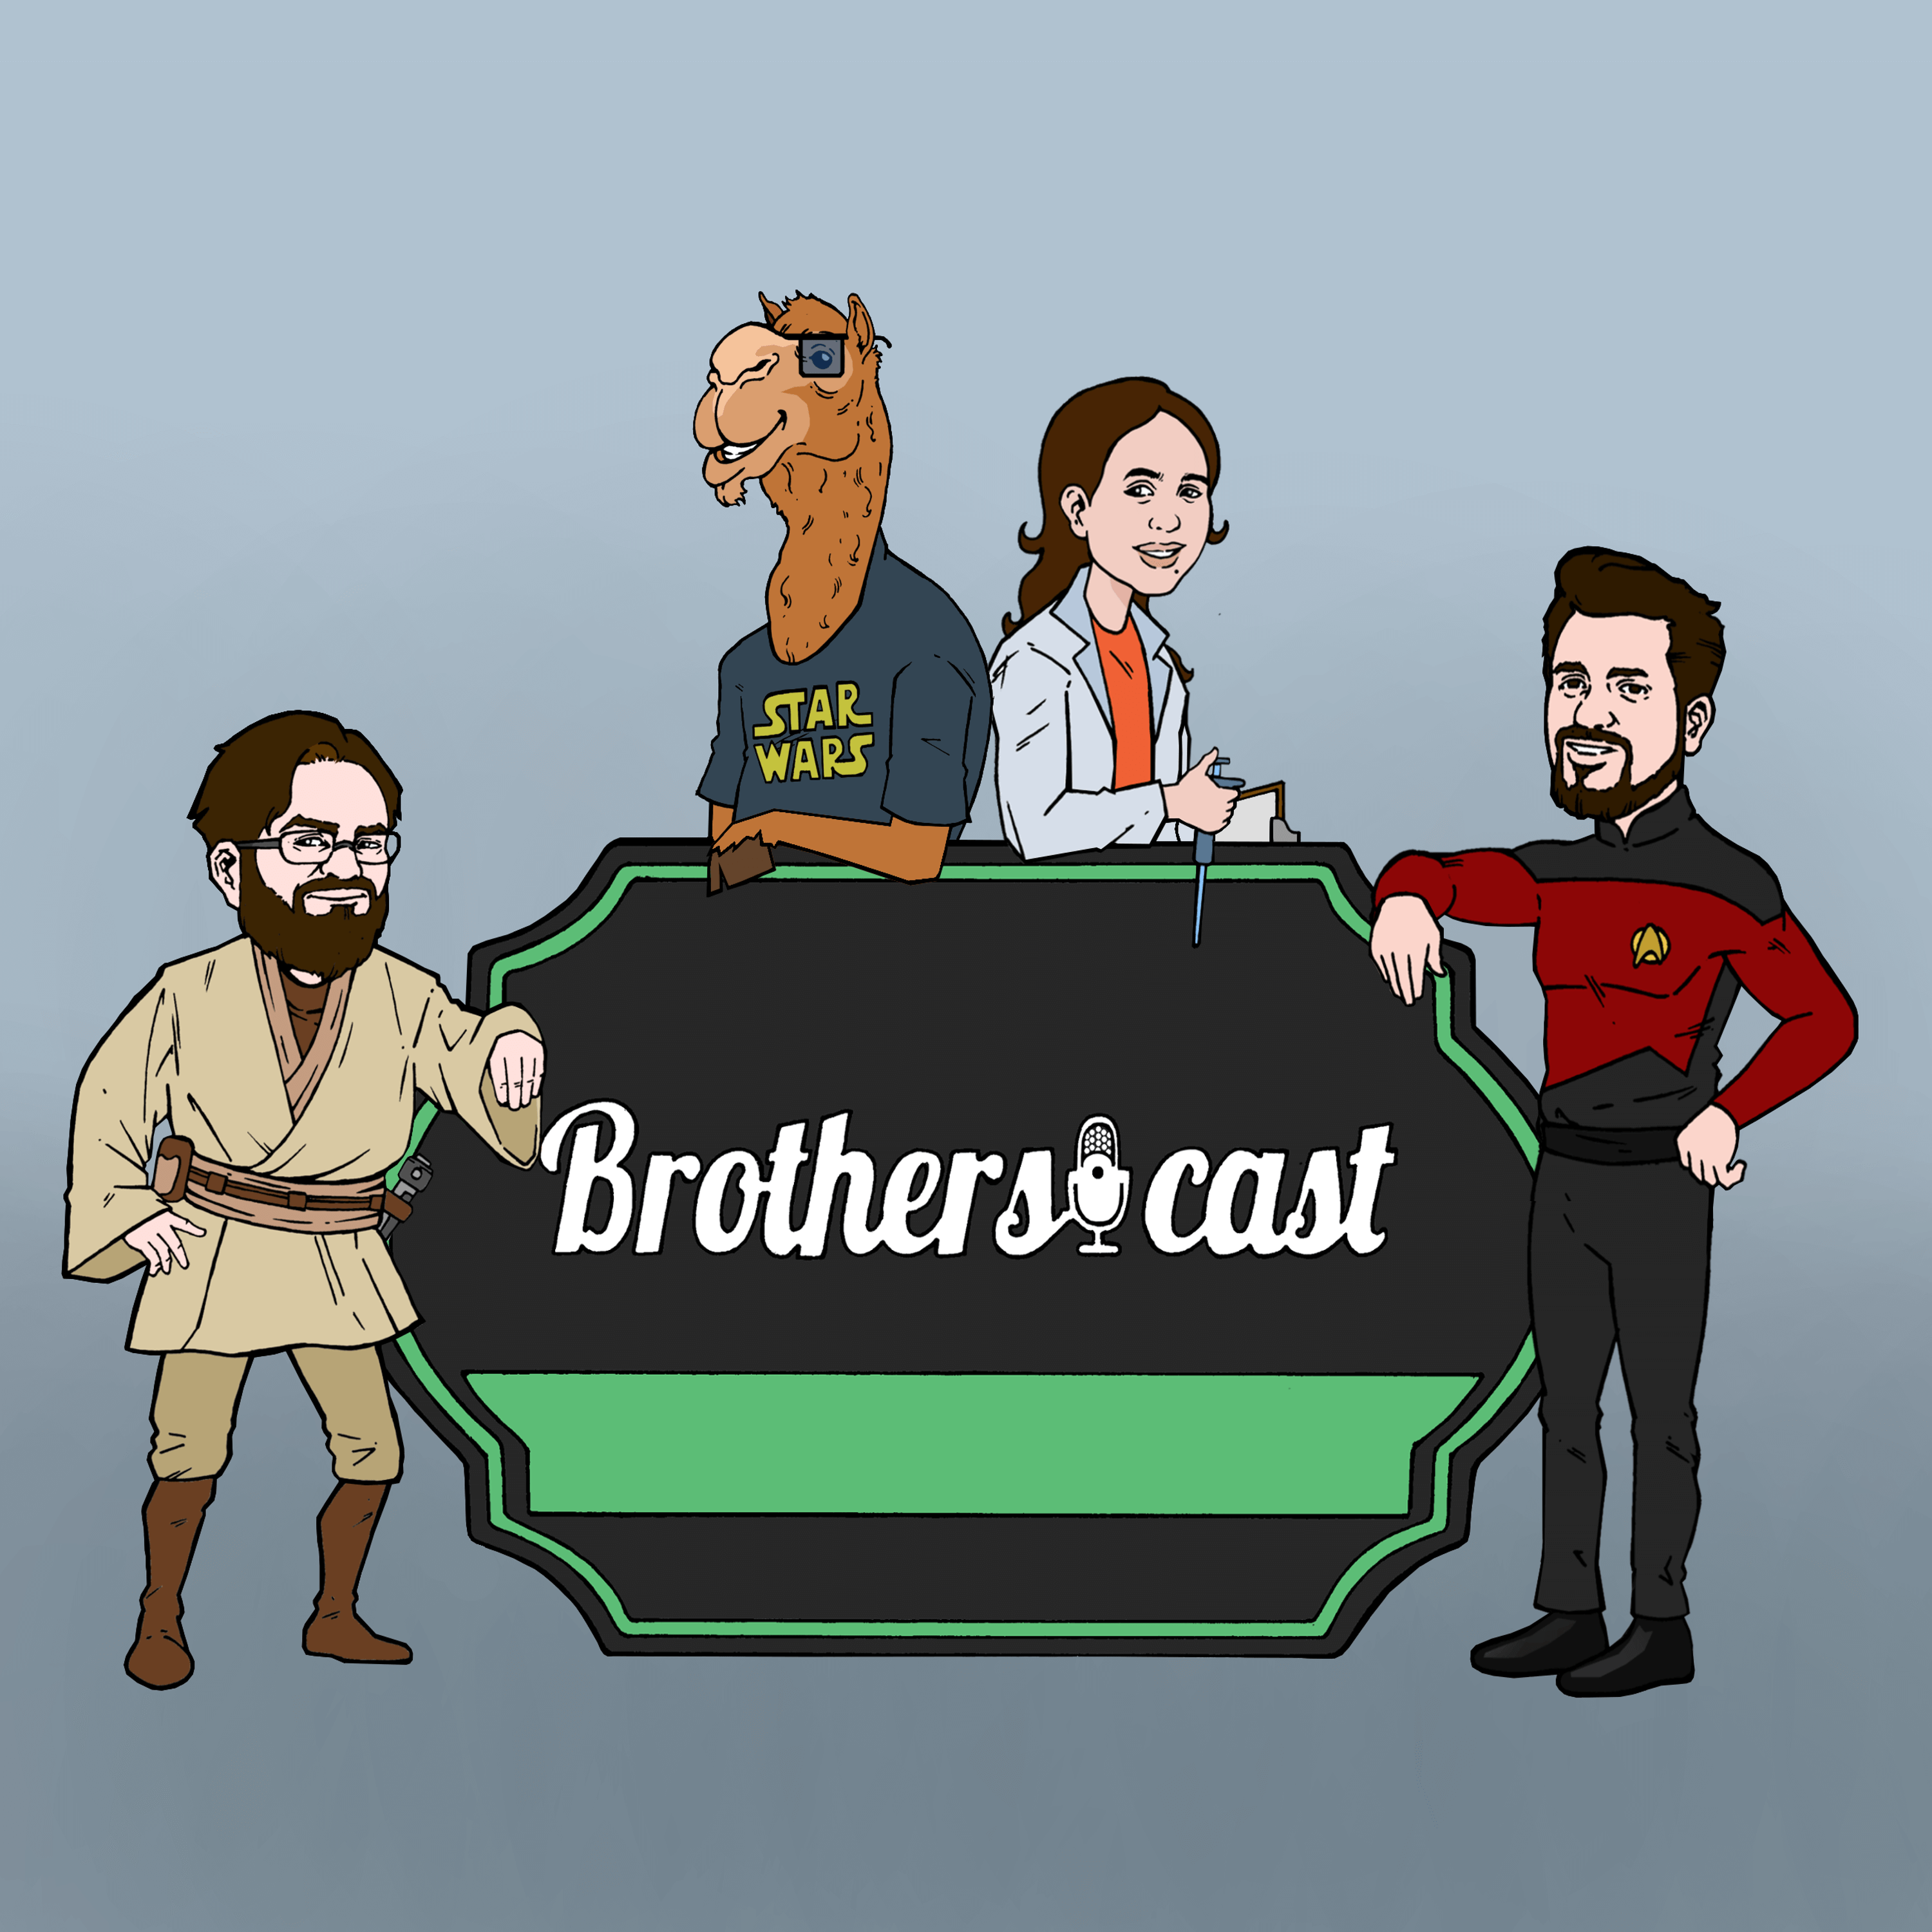 BrothersCast